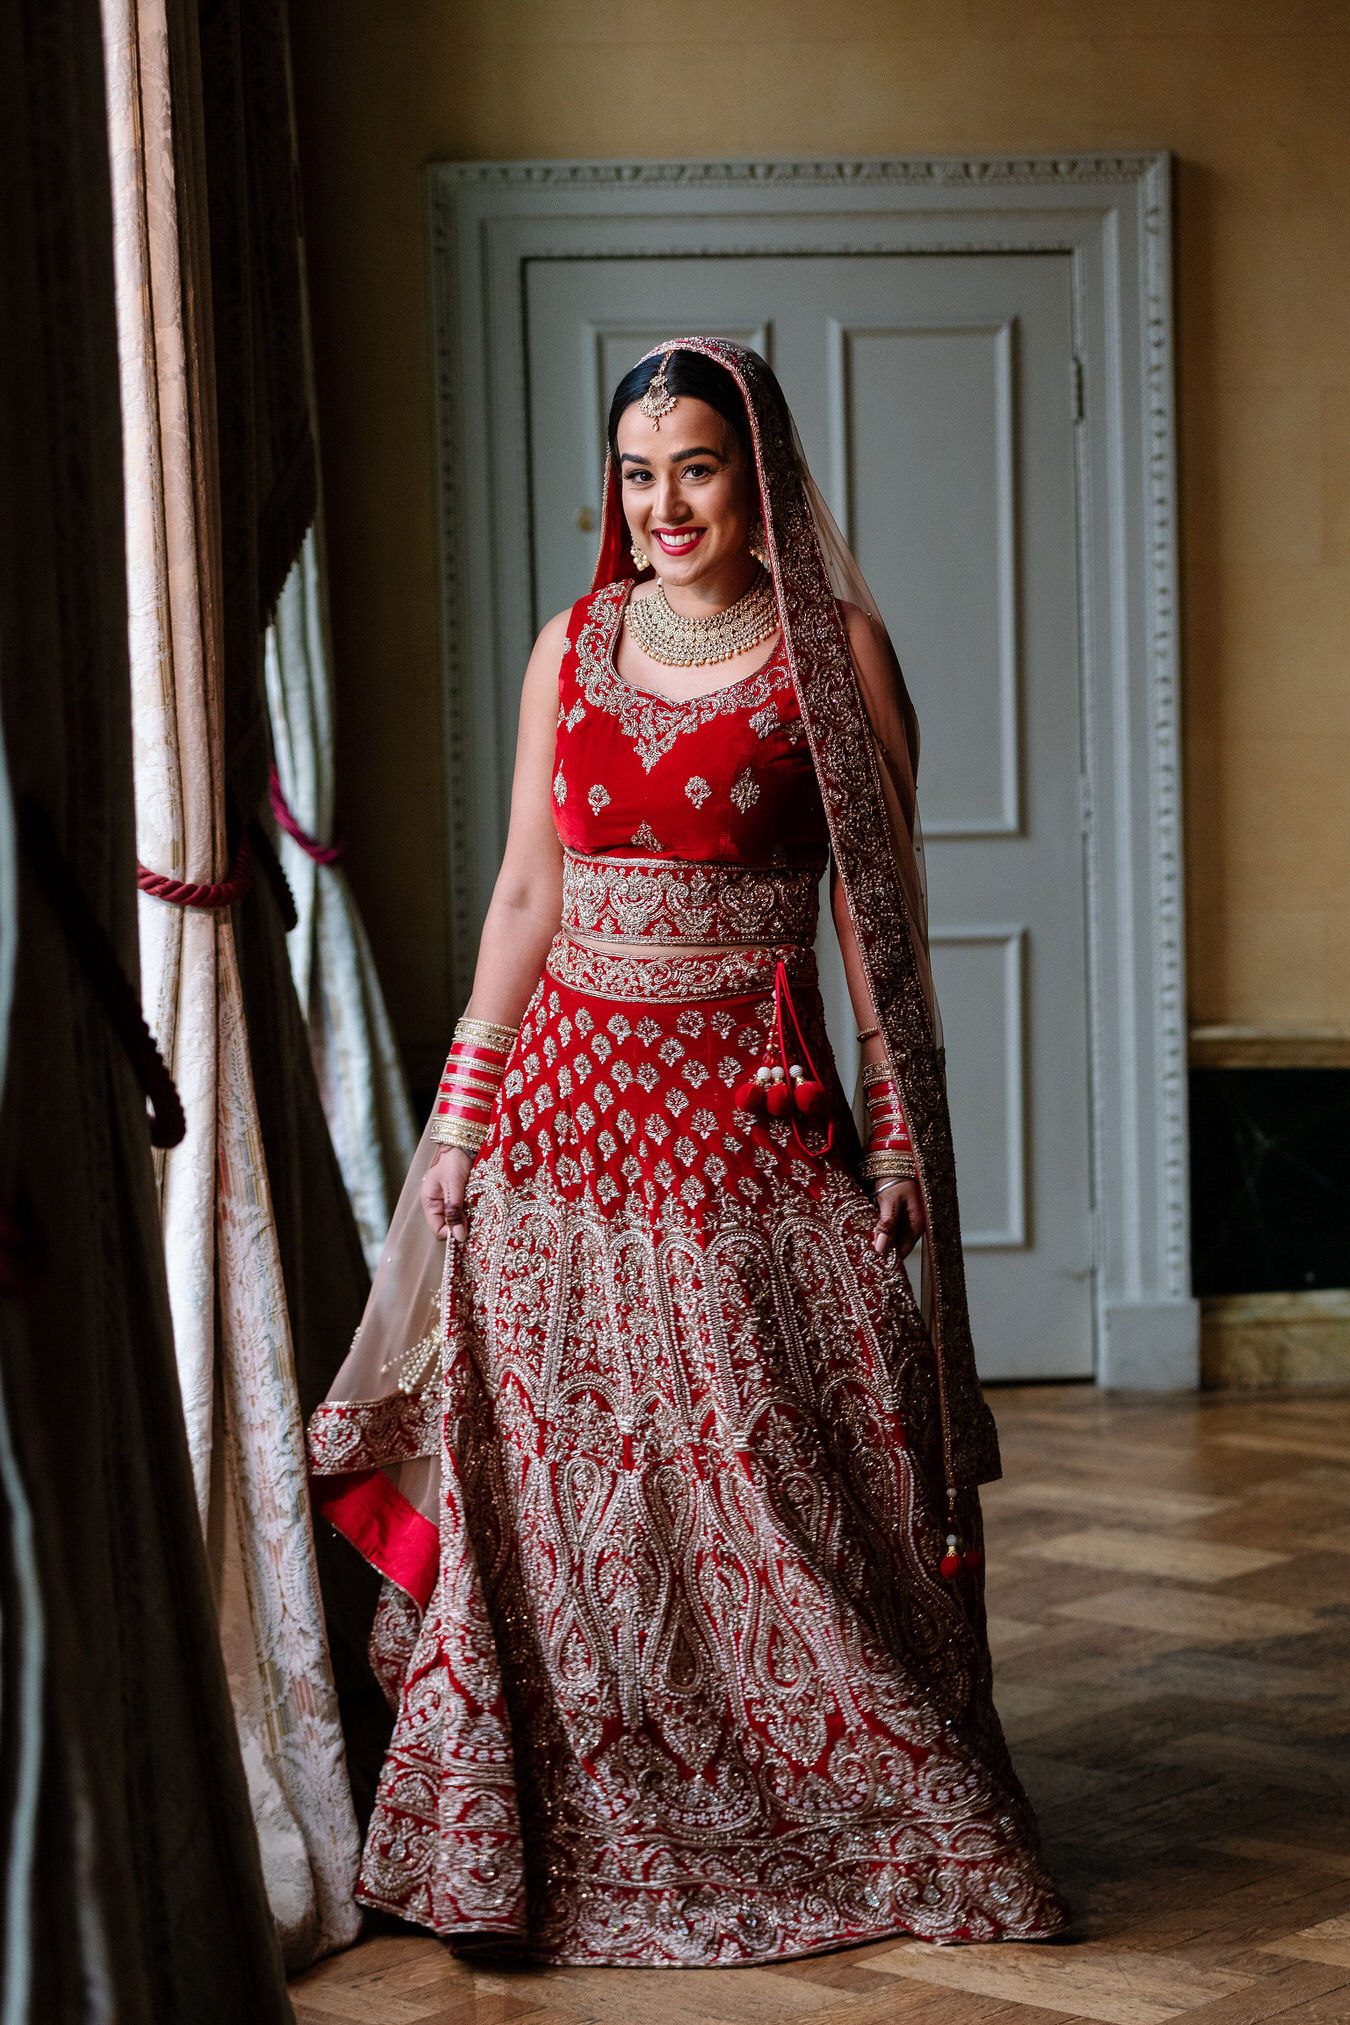 Asian Sikh bride dressed in a red bridal lehenga with golden details smiling in natural light.